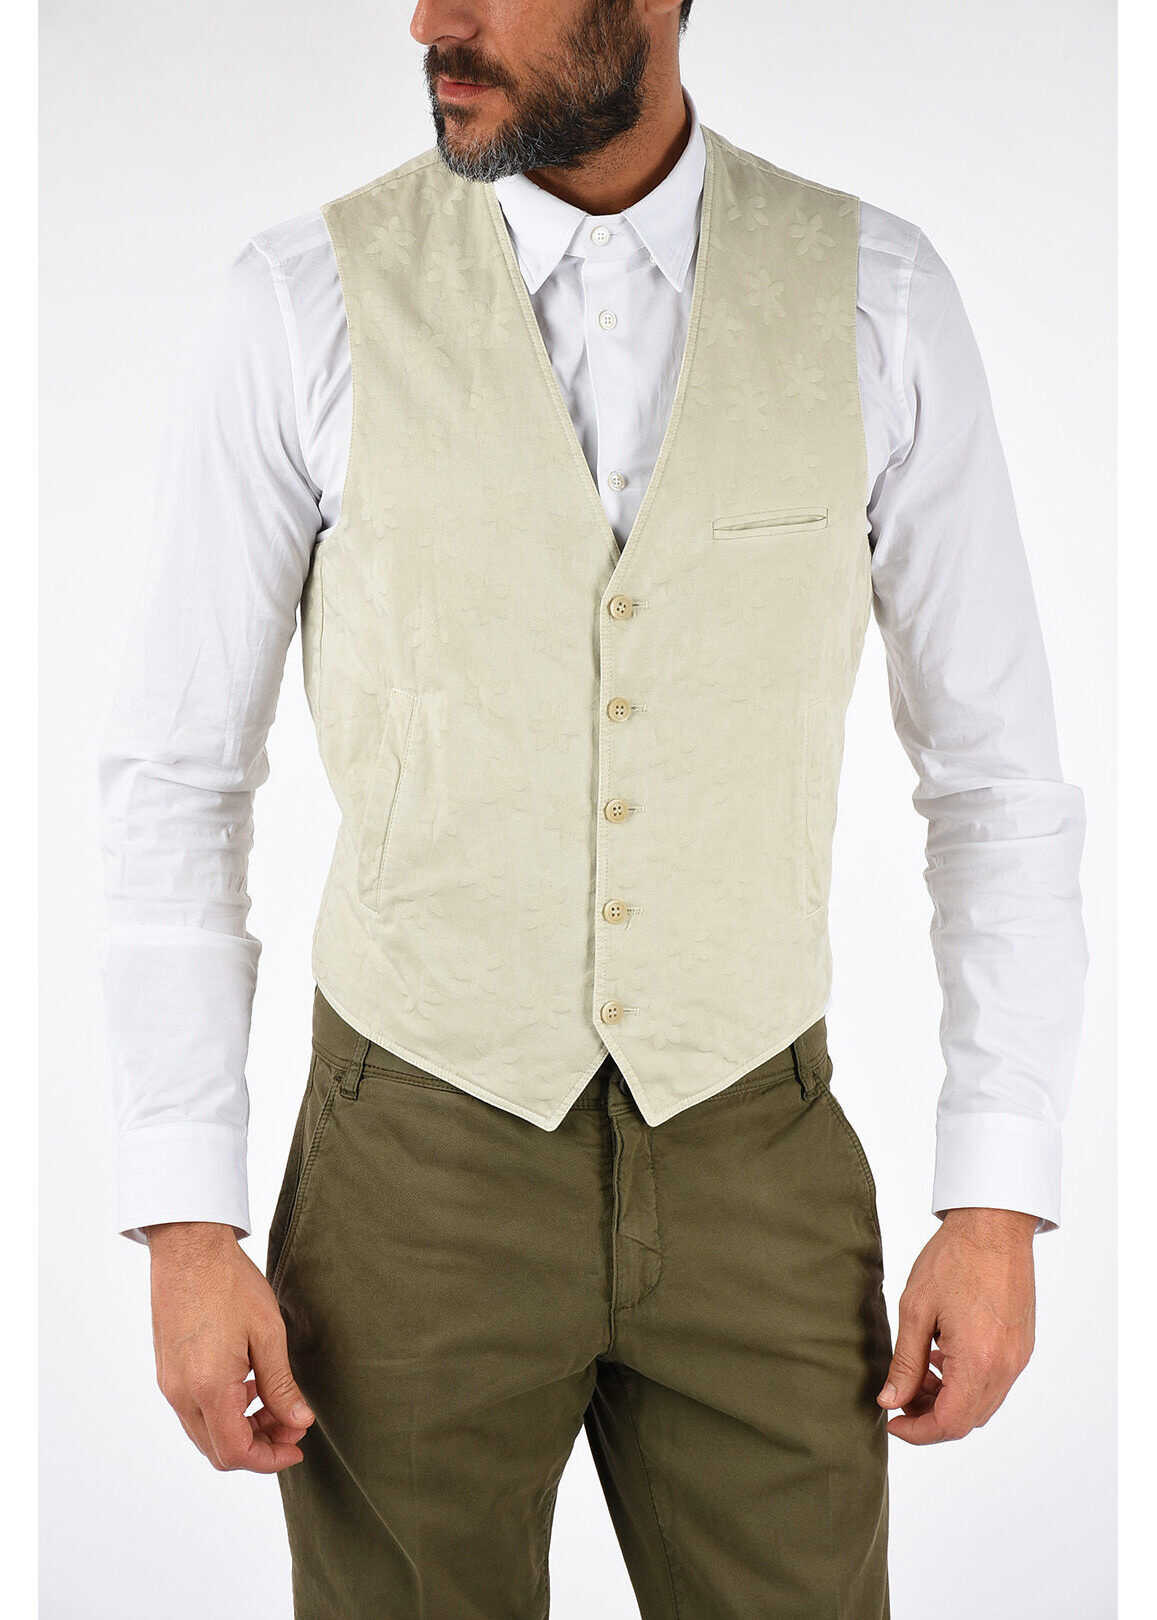 CORNELIANI CC COLLECTION Flowers Embroidered Gilet BEIGE